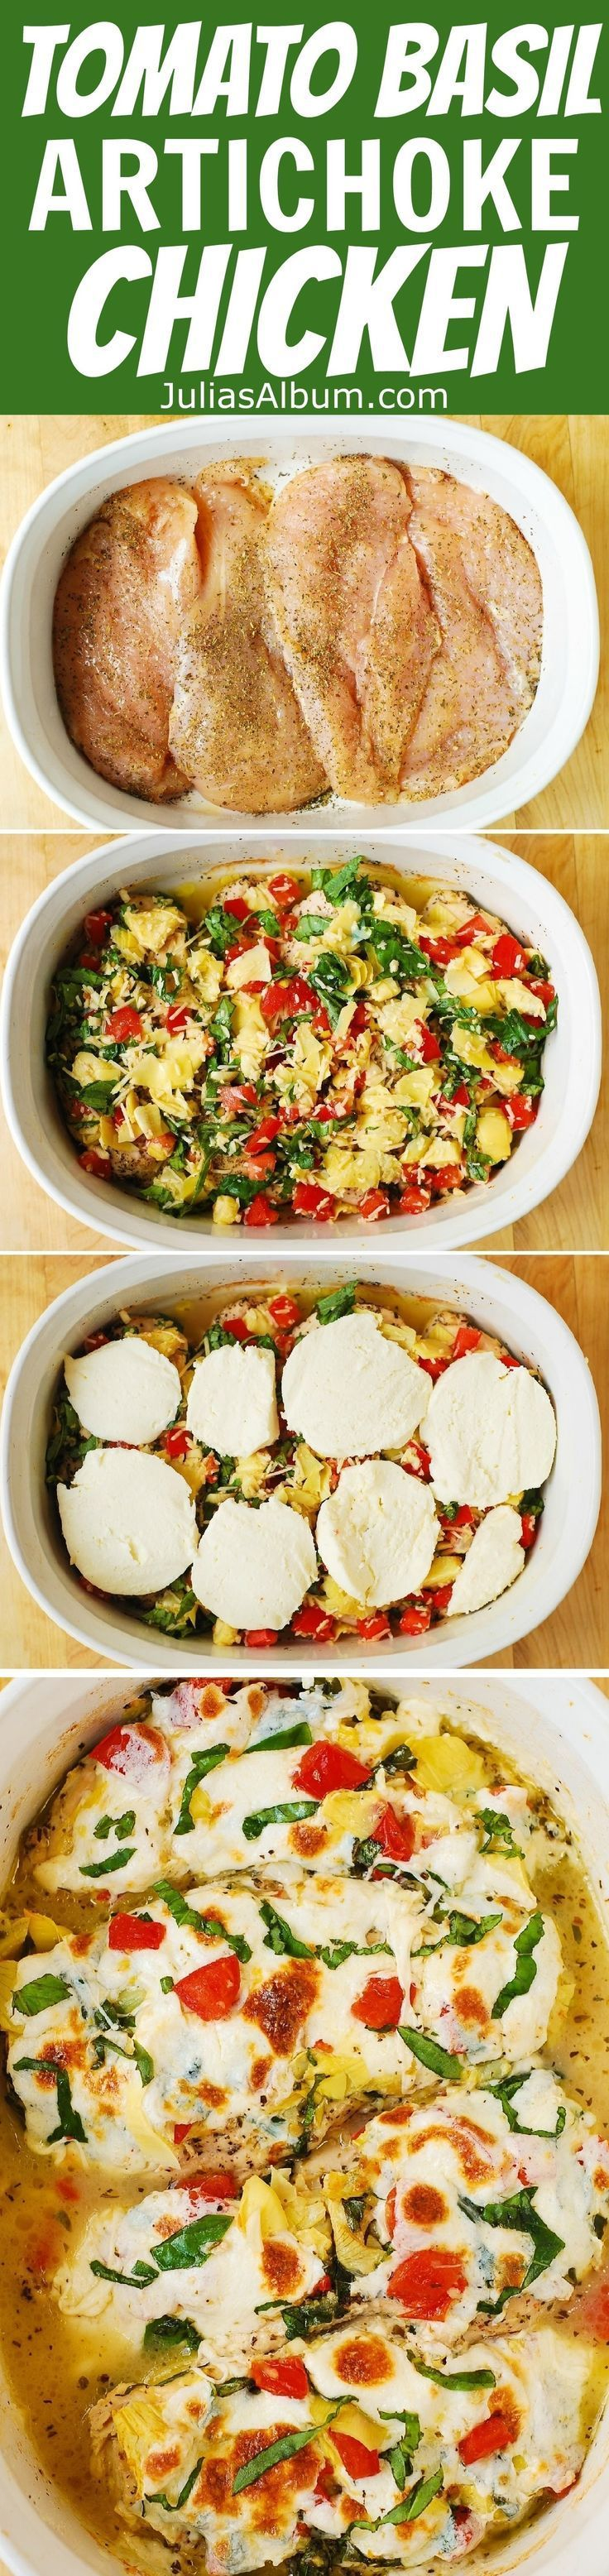 Tomato Basil Artichoke Baked Chicken breasts with melted mozzarella cheese Healthy Mediterranean dinner recipe